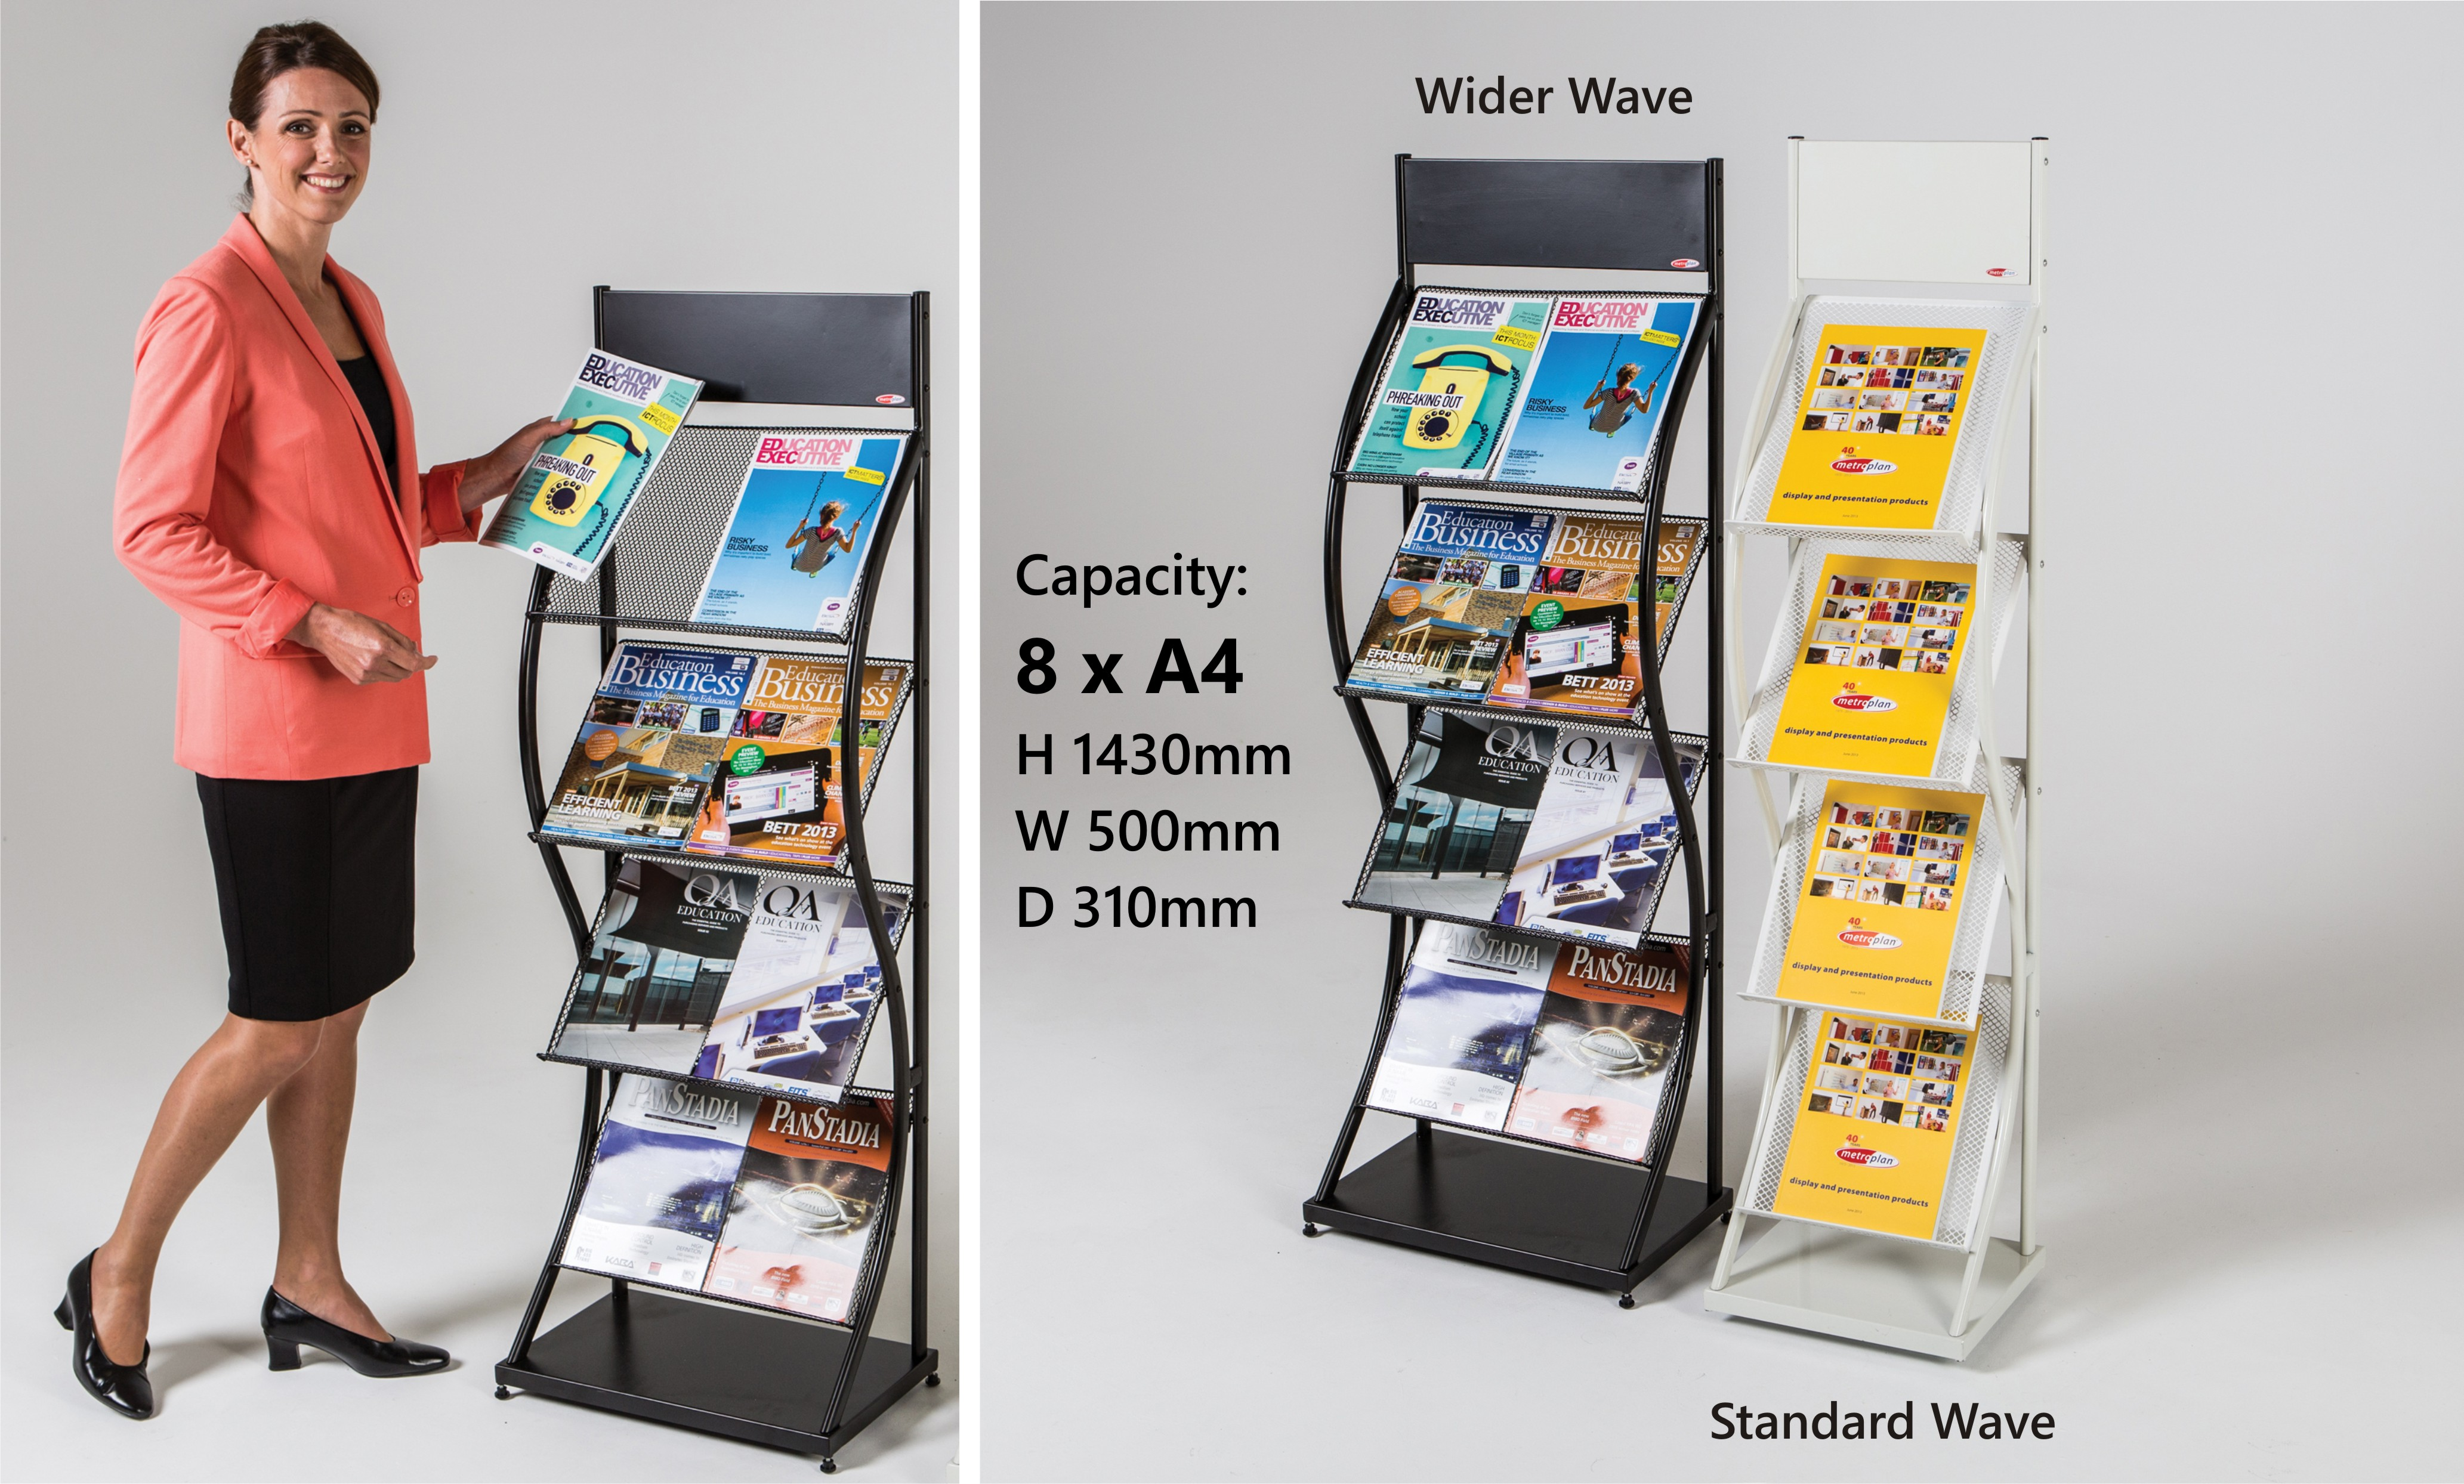 Wider Wave Freestanding Literature Dispenser